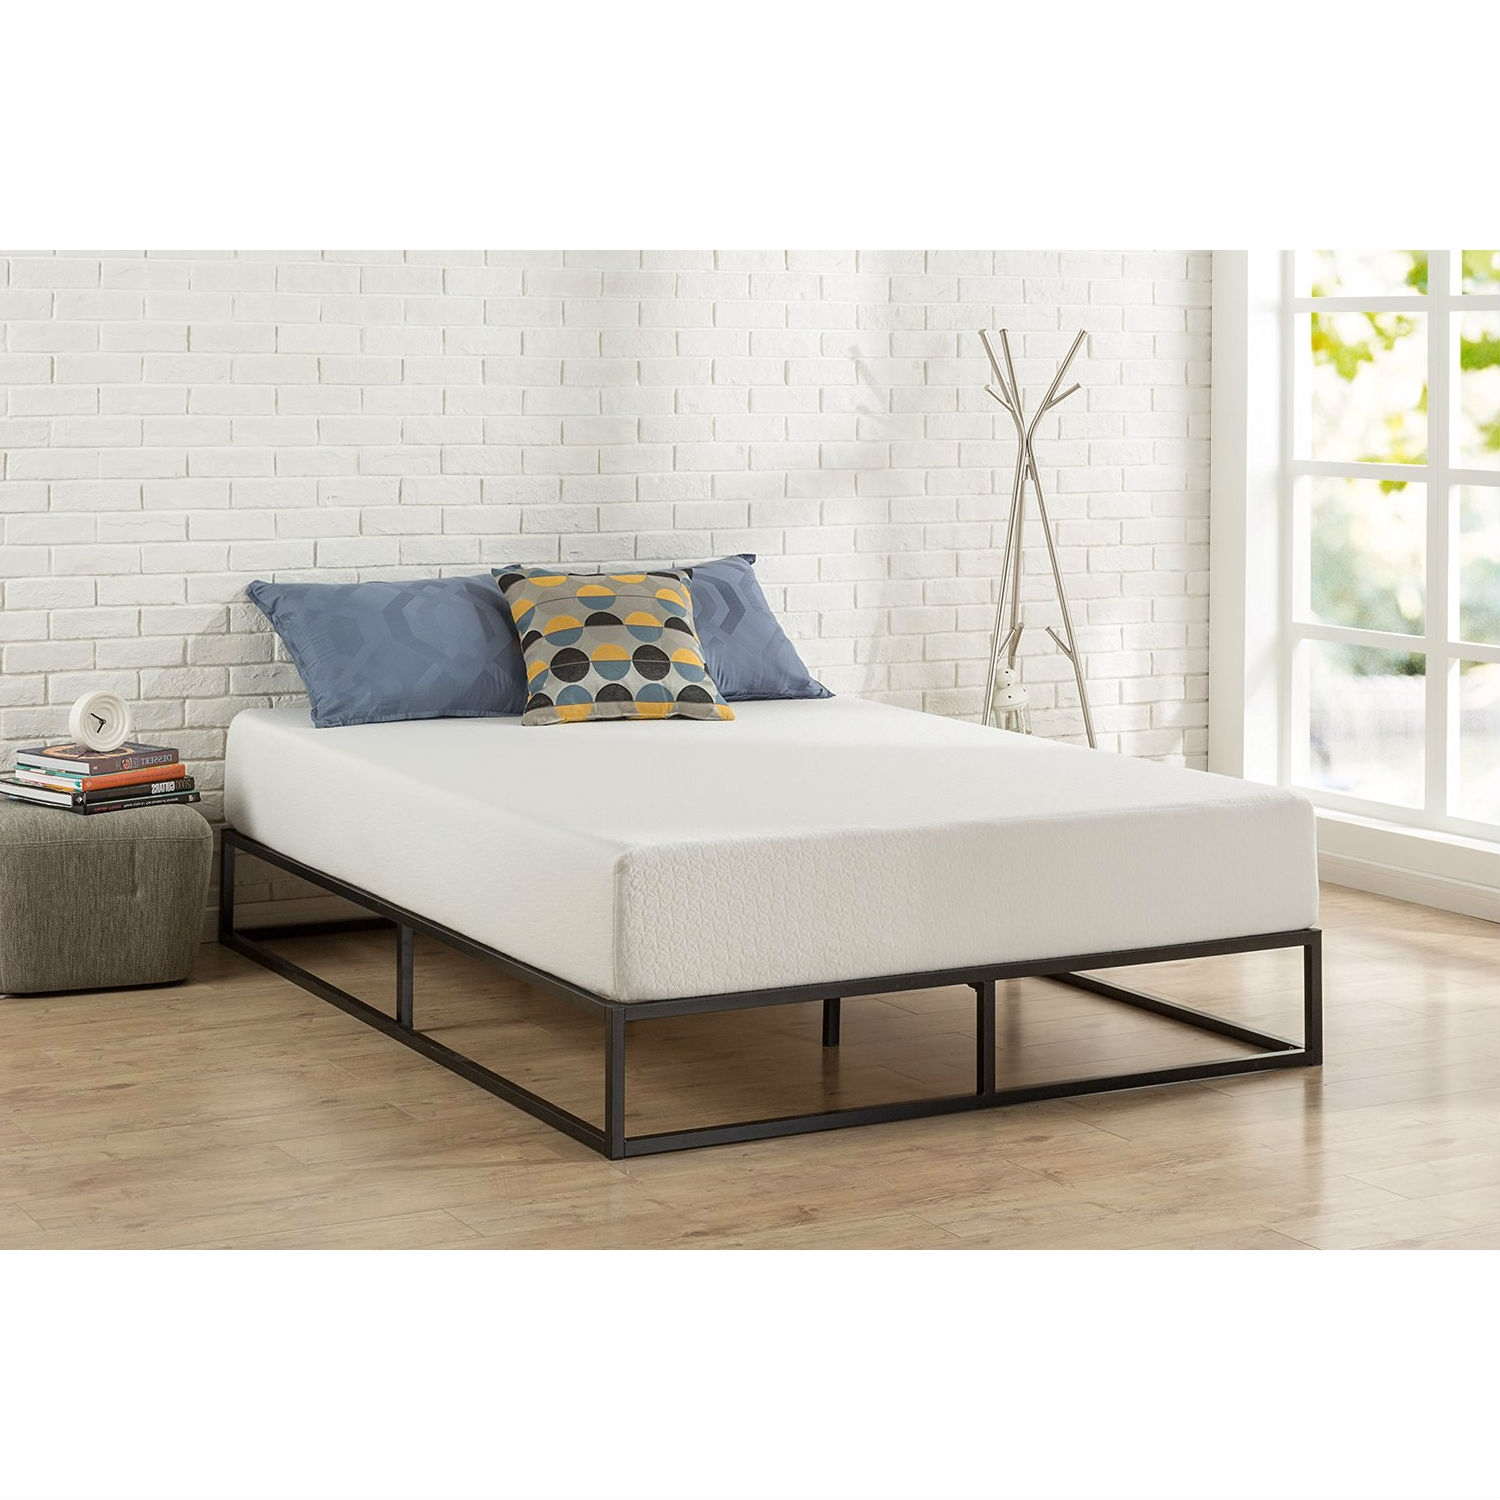 Twin size 10inch Low Profile Modern Metal Platform Bed Frame with